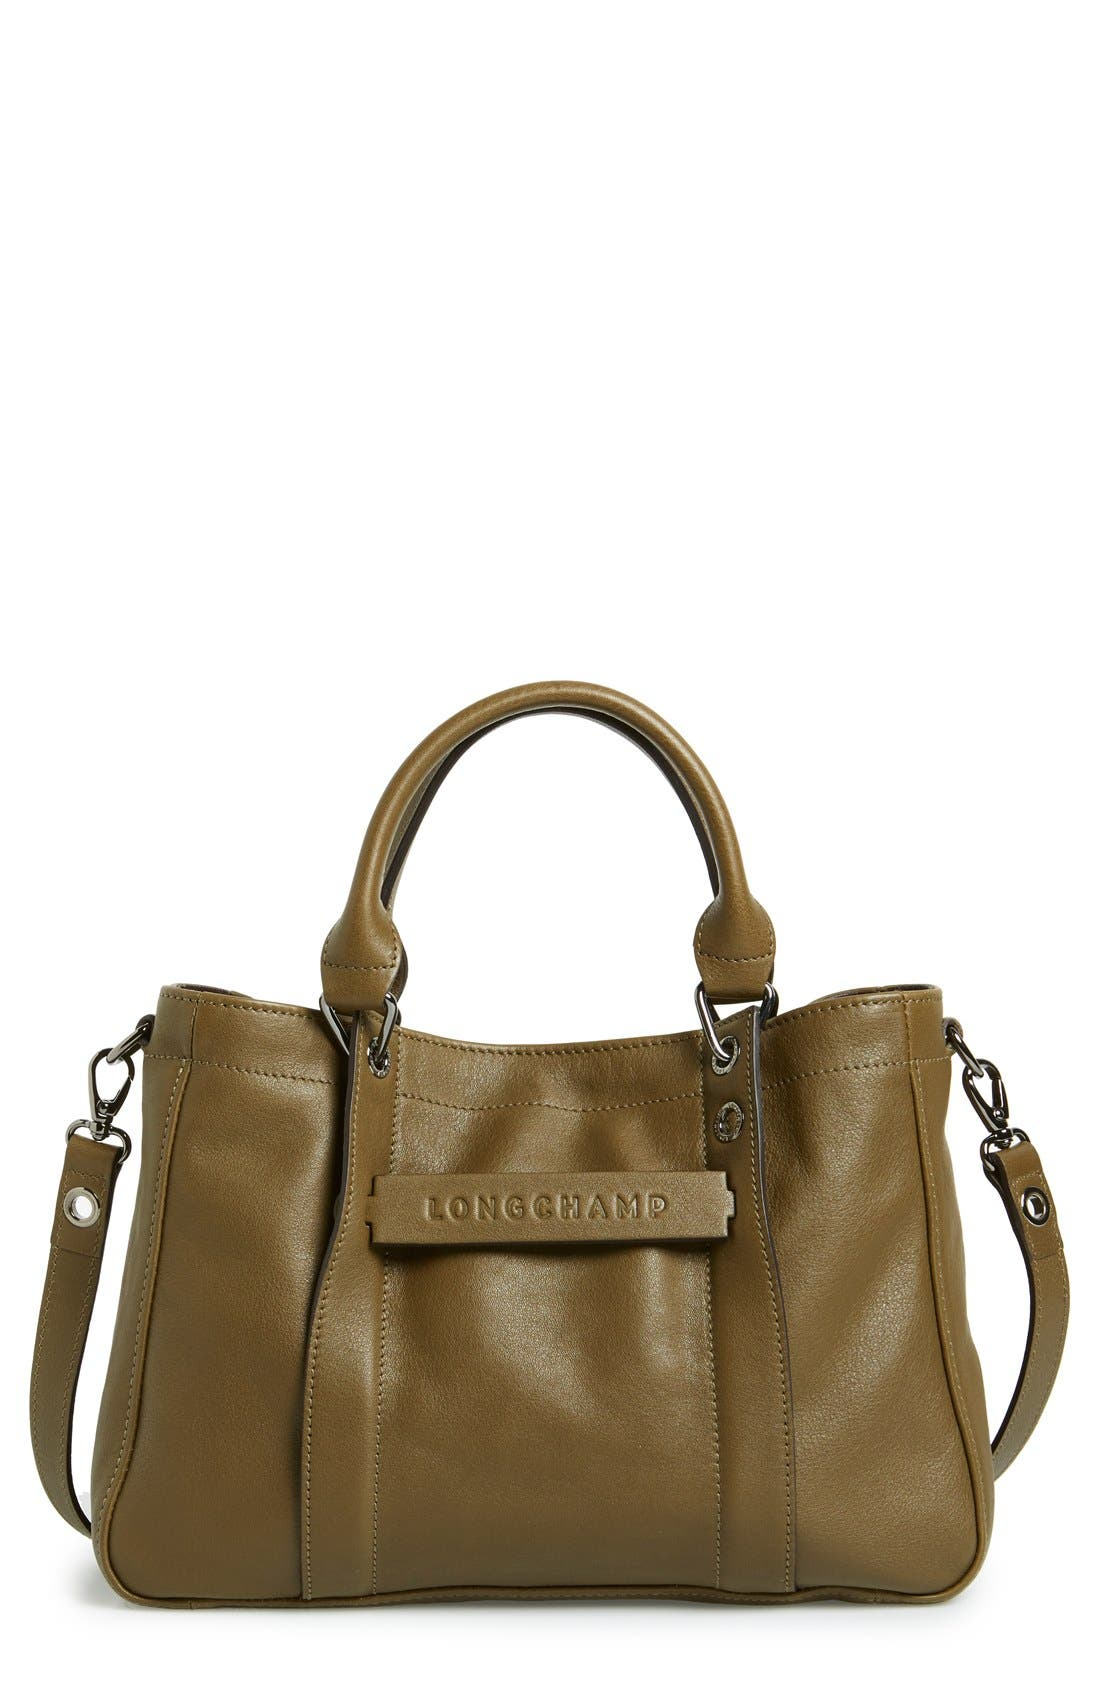 Alternate Image 1 Selected - Longchamp 'Small 3D' Leather Tote